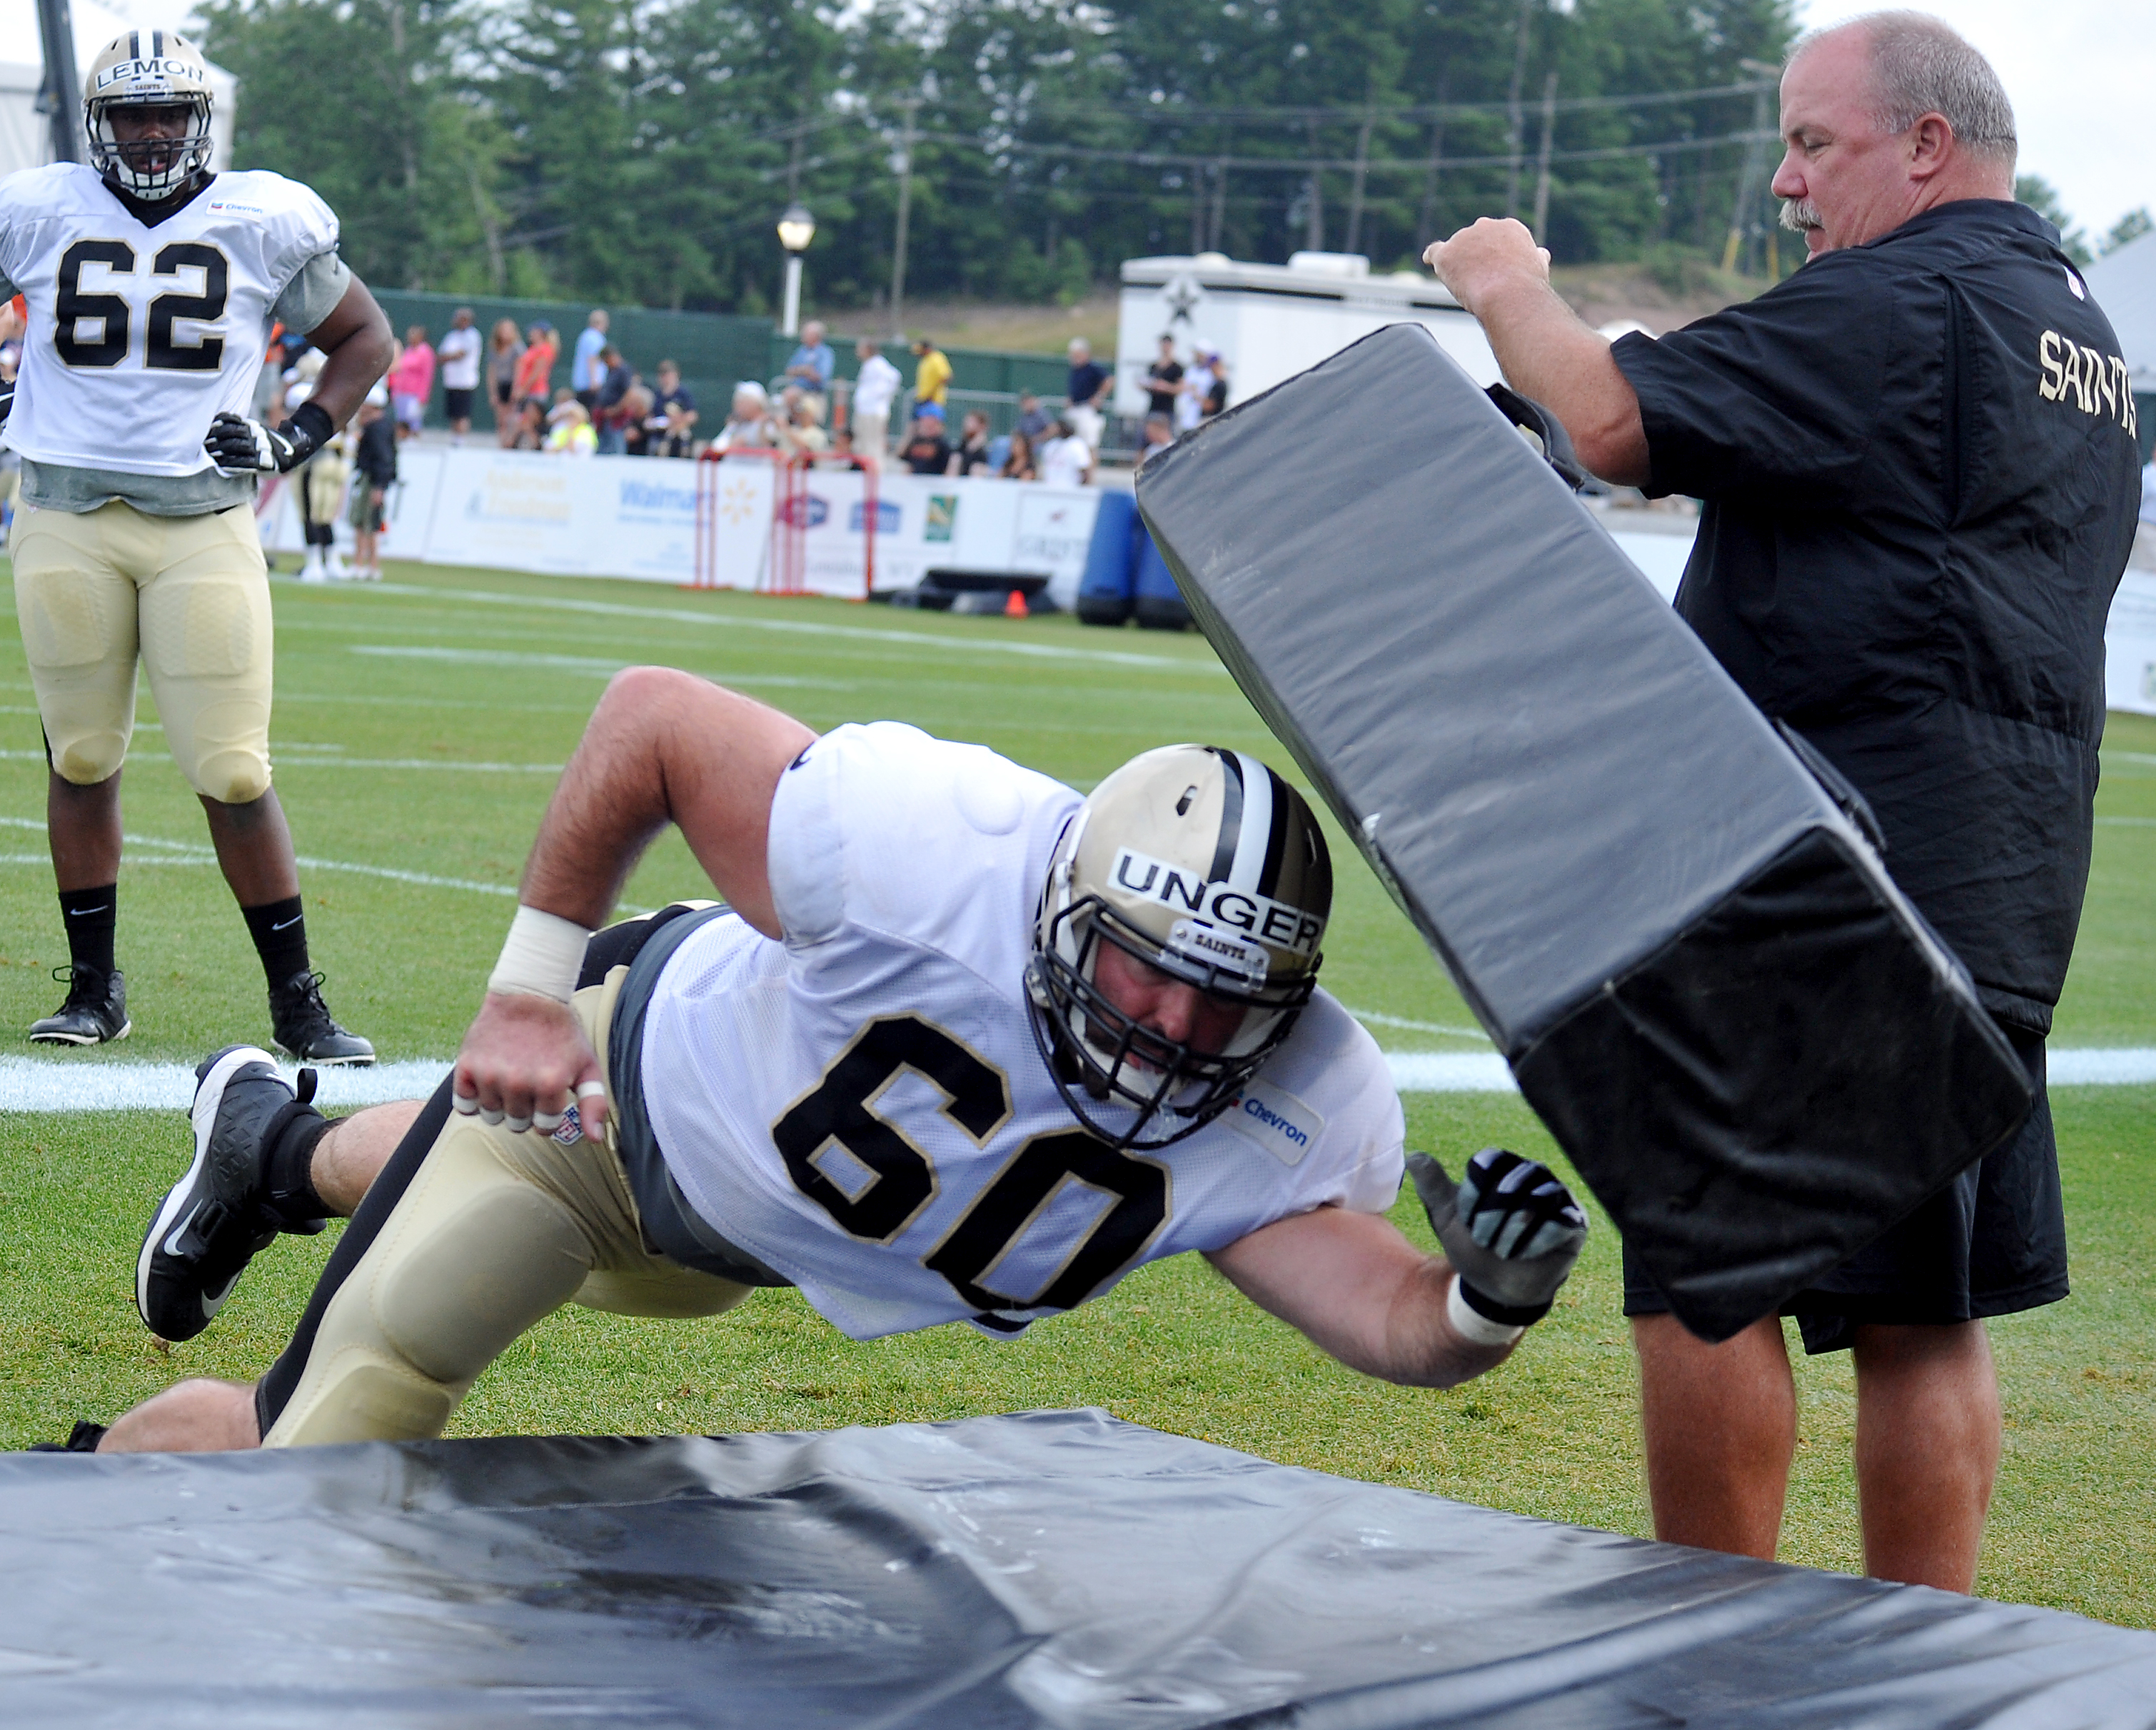 New Orleans Saints center Max Unger (60) hits a mat during a drill at the team's NFL football training camp in White Sulphur Springs, W. Va., Wednesday, Aug. 5, 2015. (AP Photo/Chris Tilley)